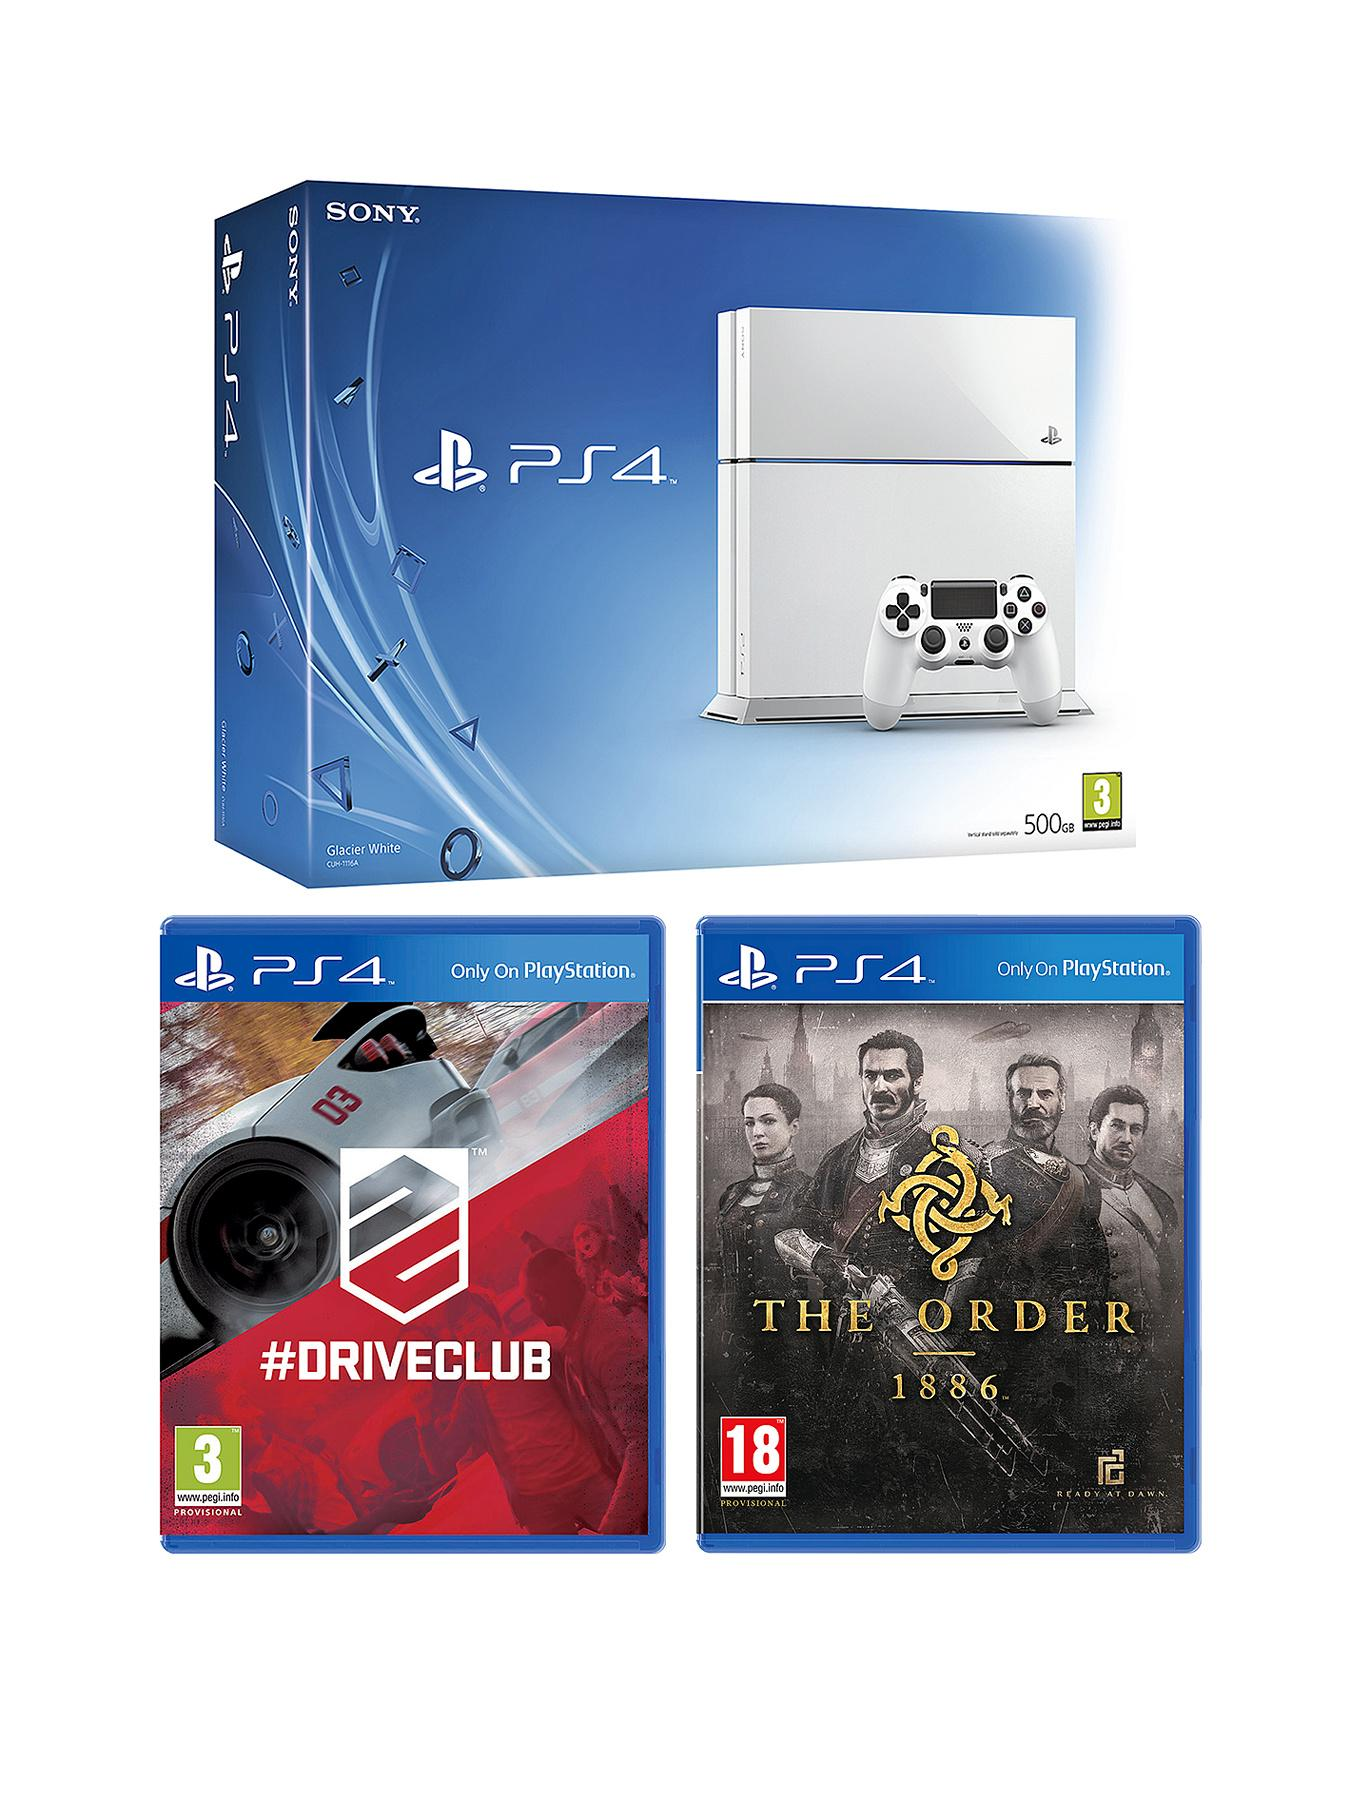 Playstation 4 White Console with The Order:1886, Driveclub and Optional 12 Months Playstation Plus or DualShock 4 Controller